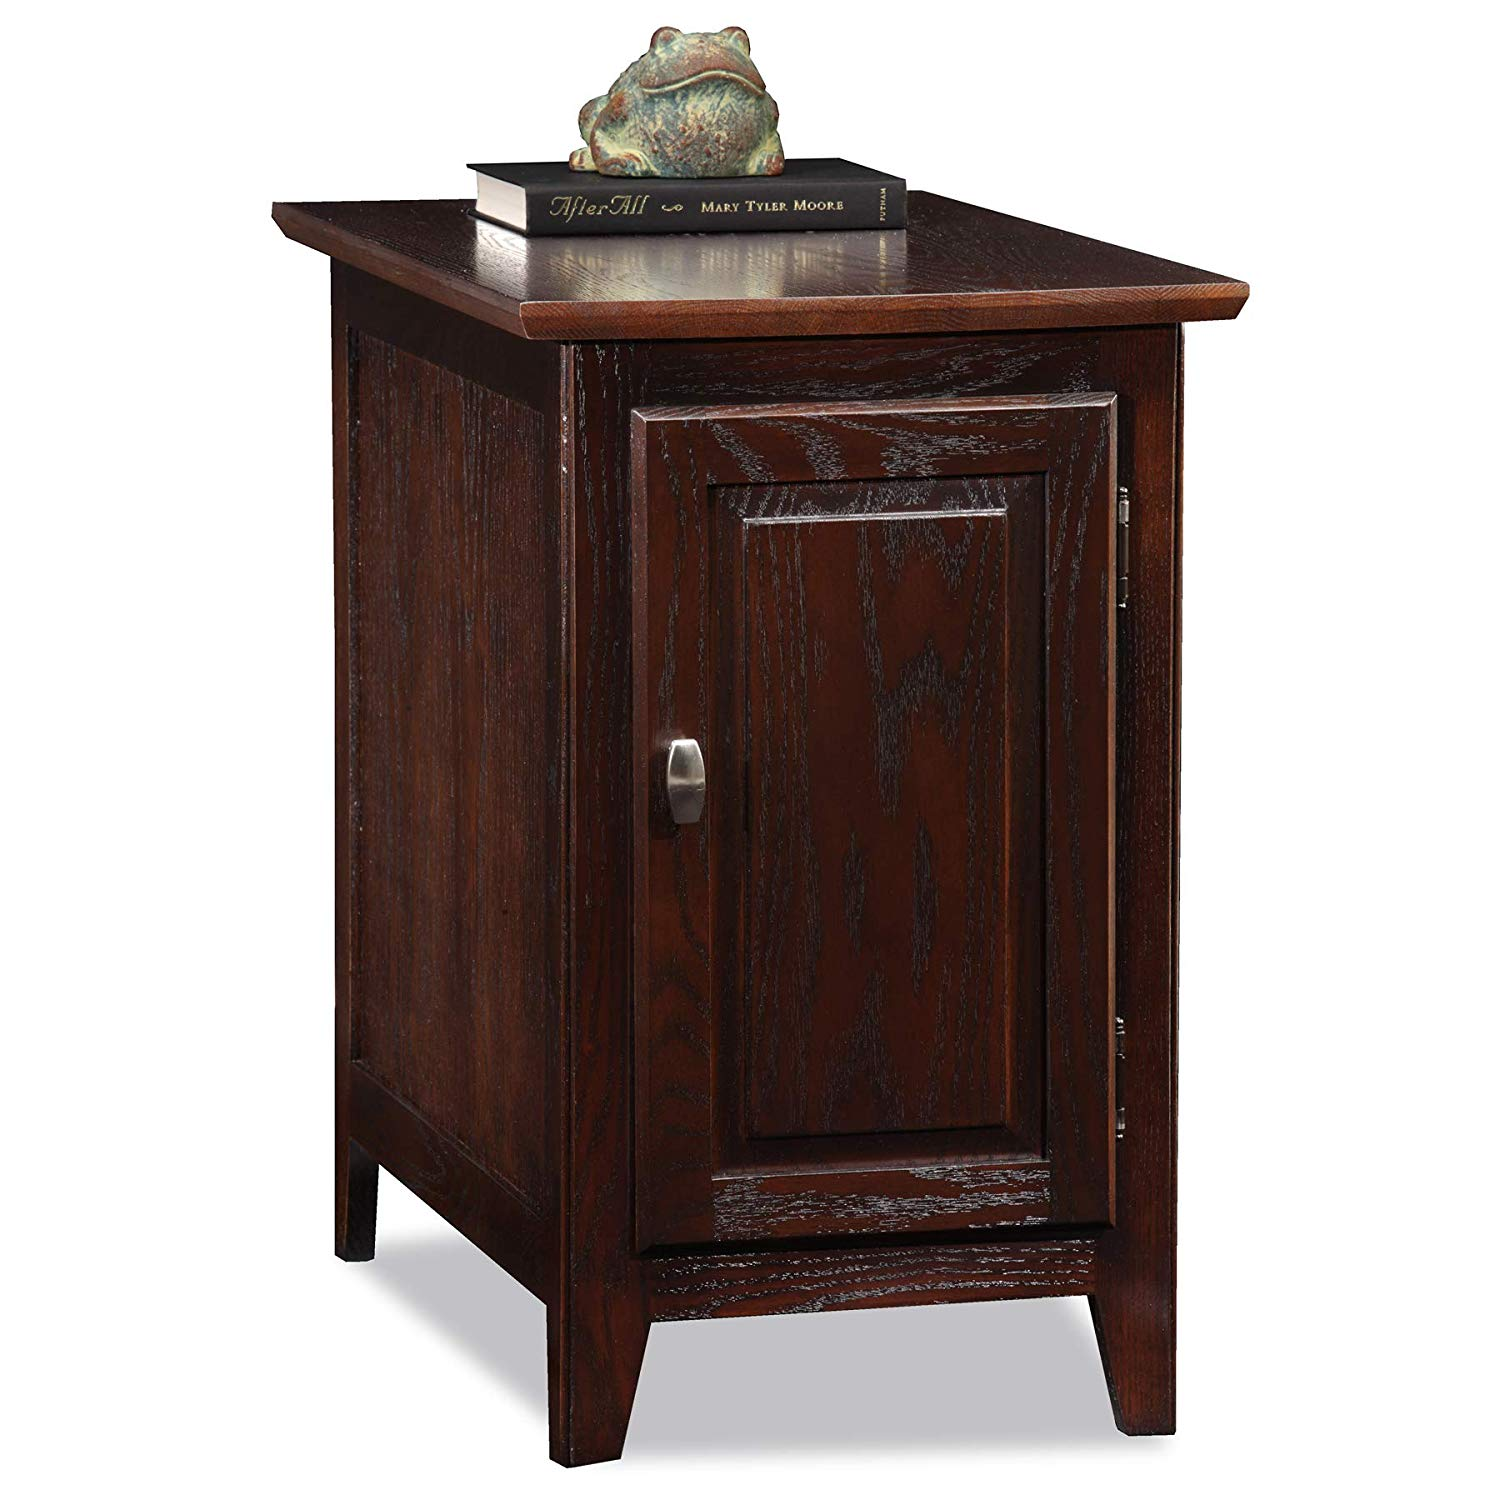 leick furniture cabinet storage end table chocolate oak tables kitchen dining unique solid wood coffee black iron pipe entertainment center pallet dolphin bases espresso target